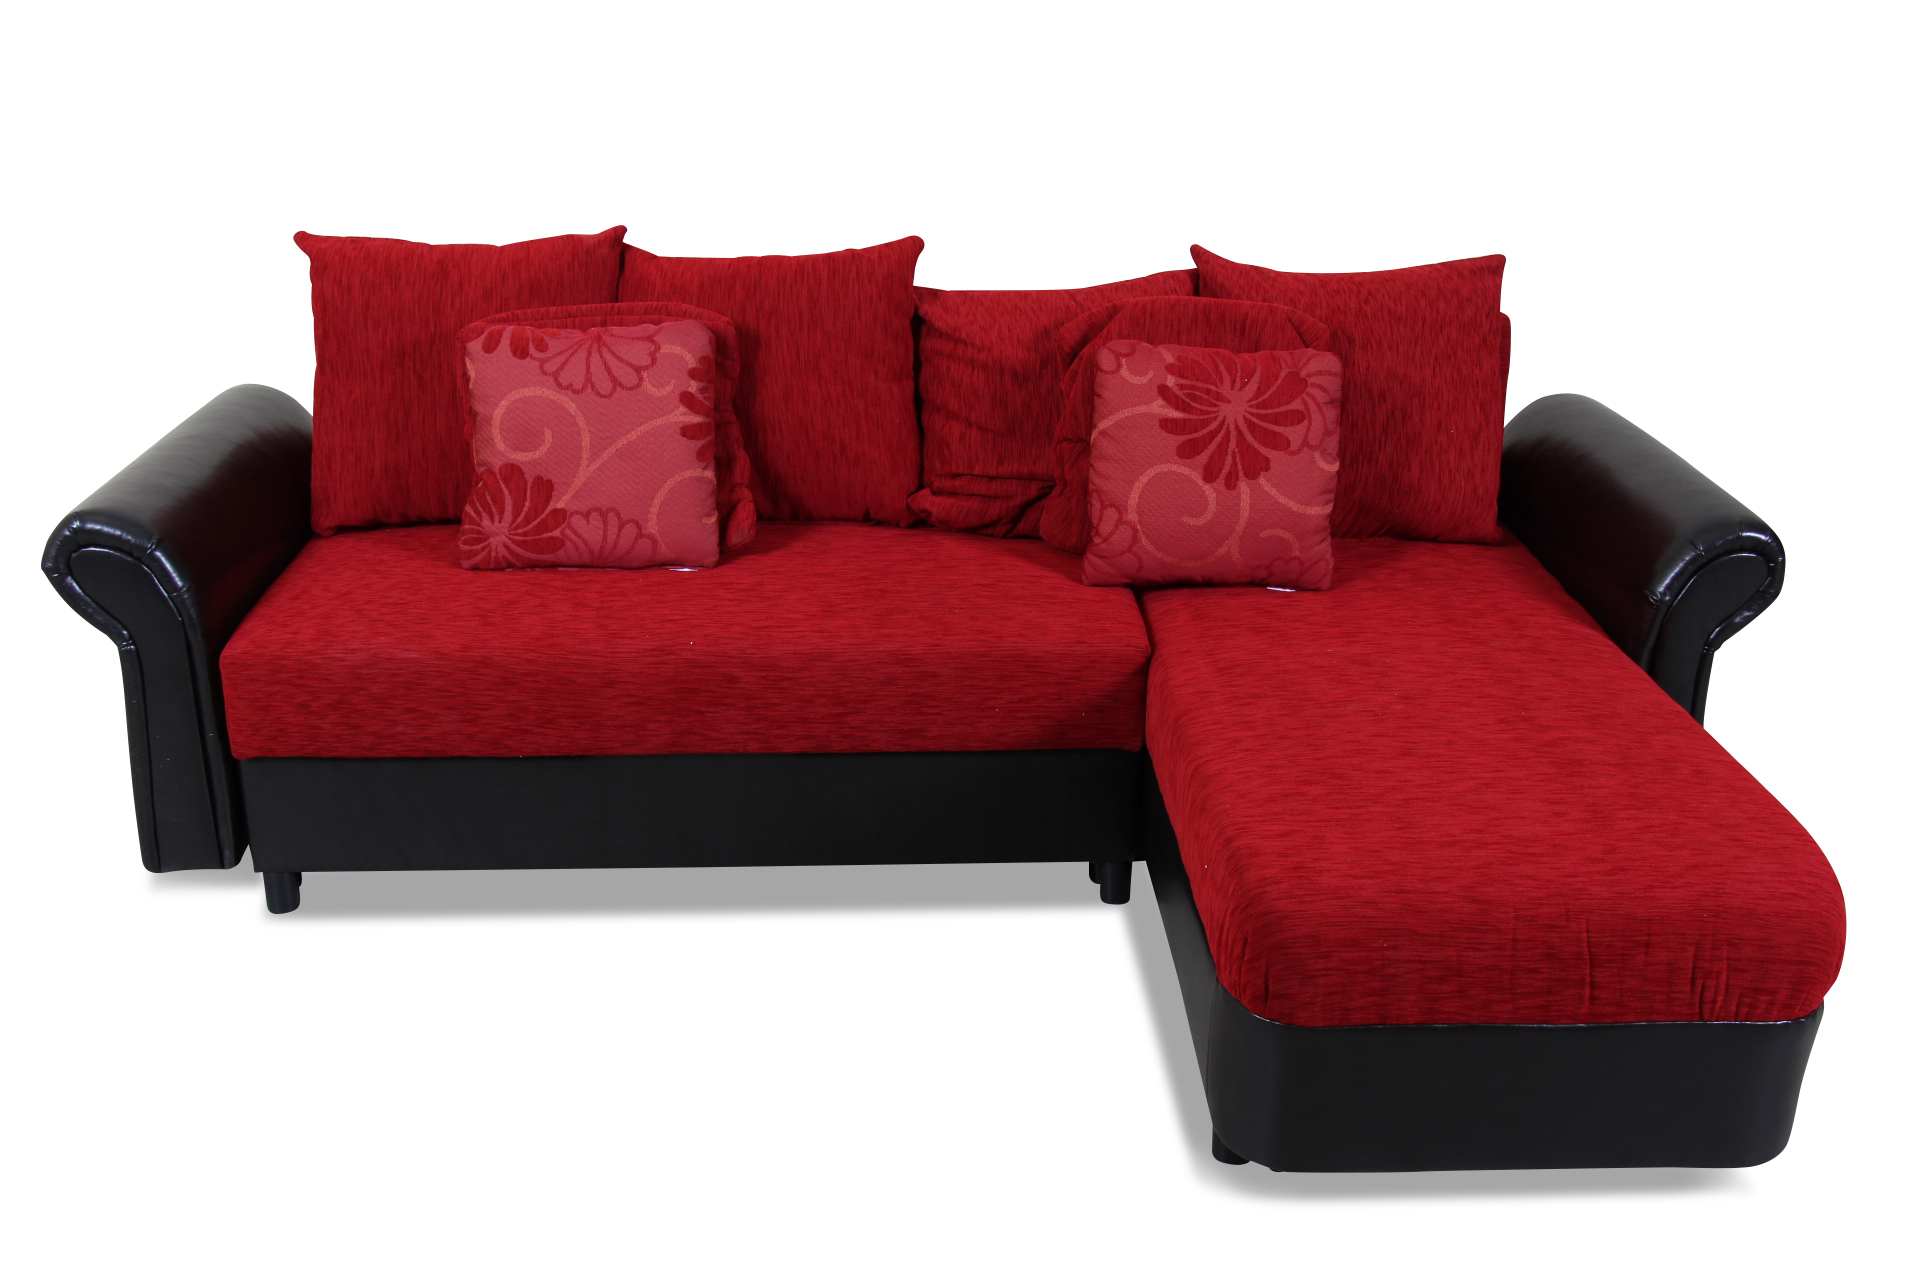 ecksofa schlaffunktion federkern inspirierendes design f r wohnm bel. Black Bedroom Furniture Sets. Home Design Ideas